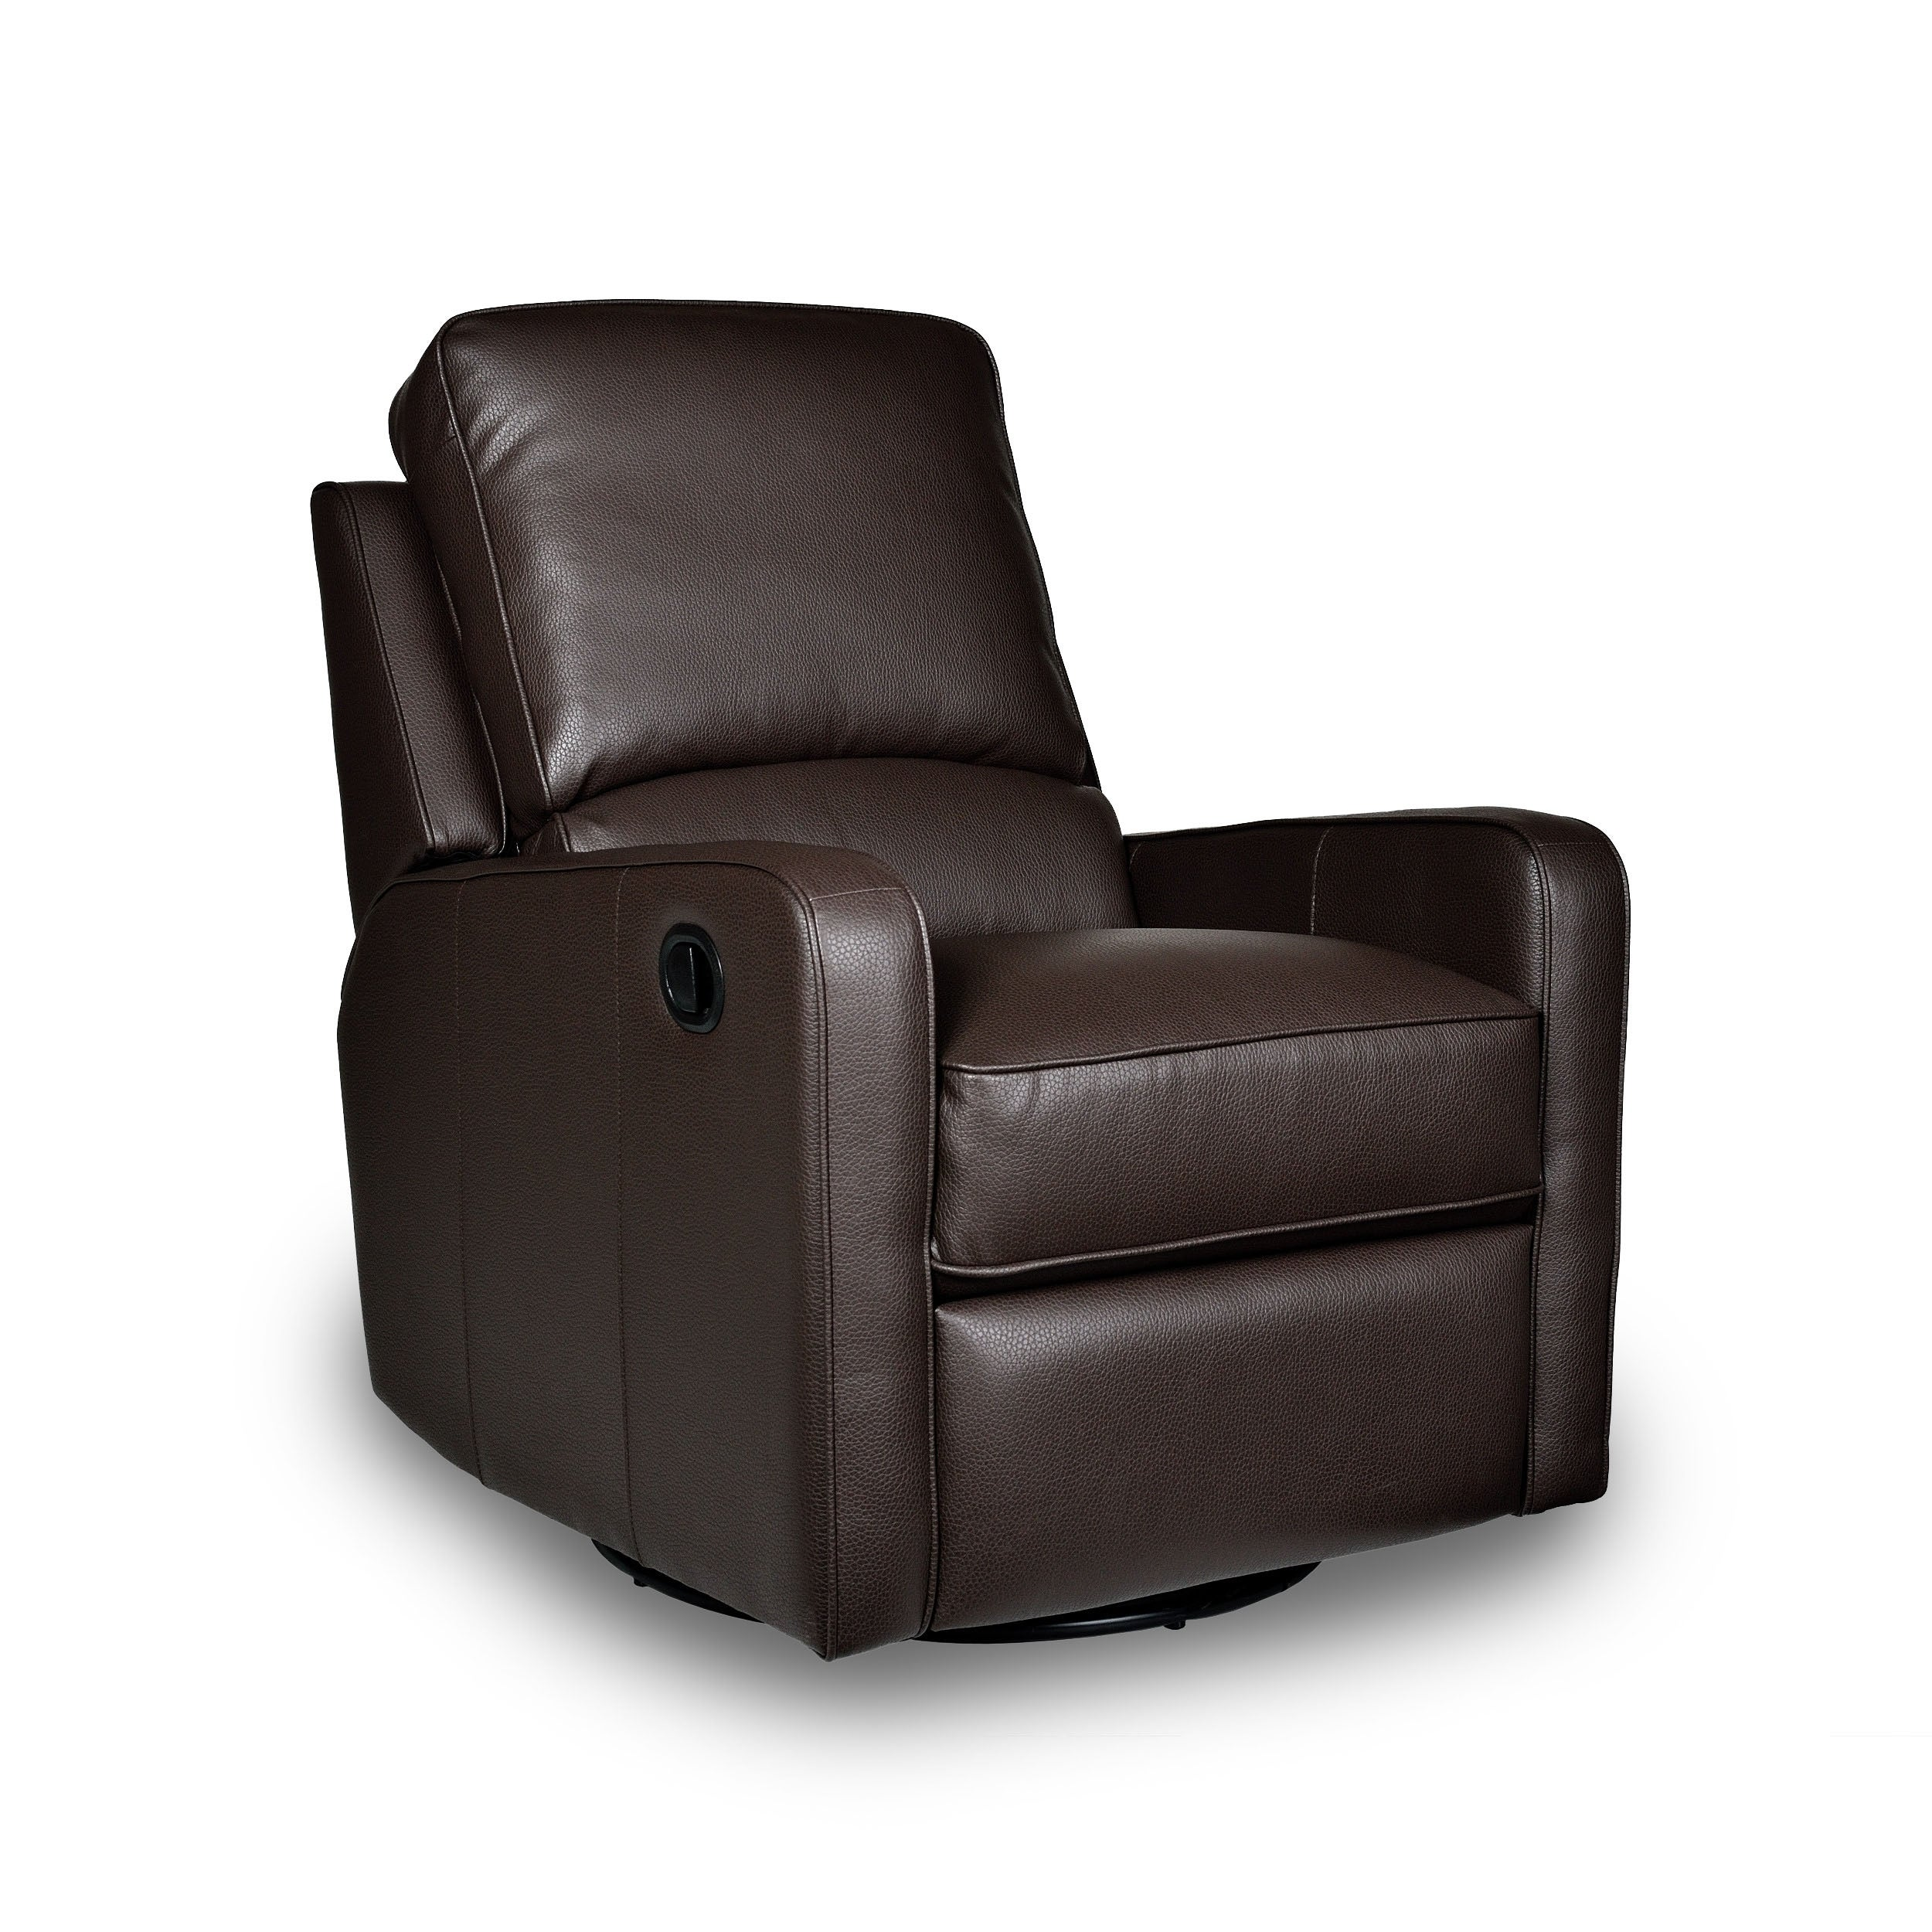 Brilliant Perth Swivel Glider Recliner Pabps2019 Chair Design Images Pabps2019Com